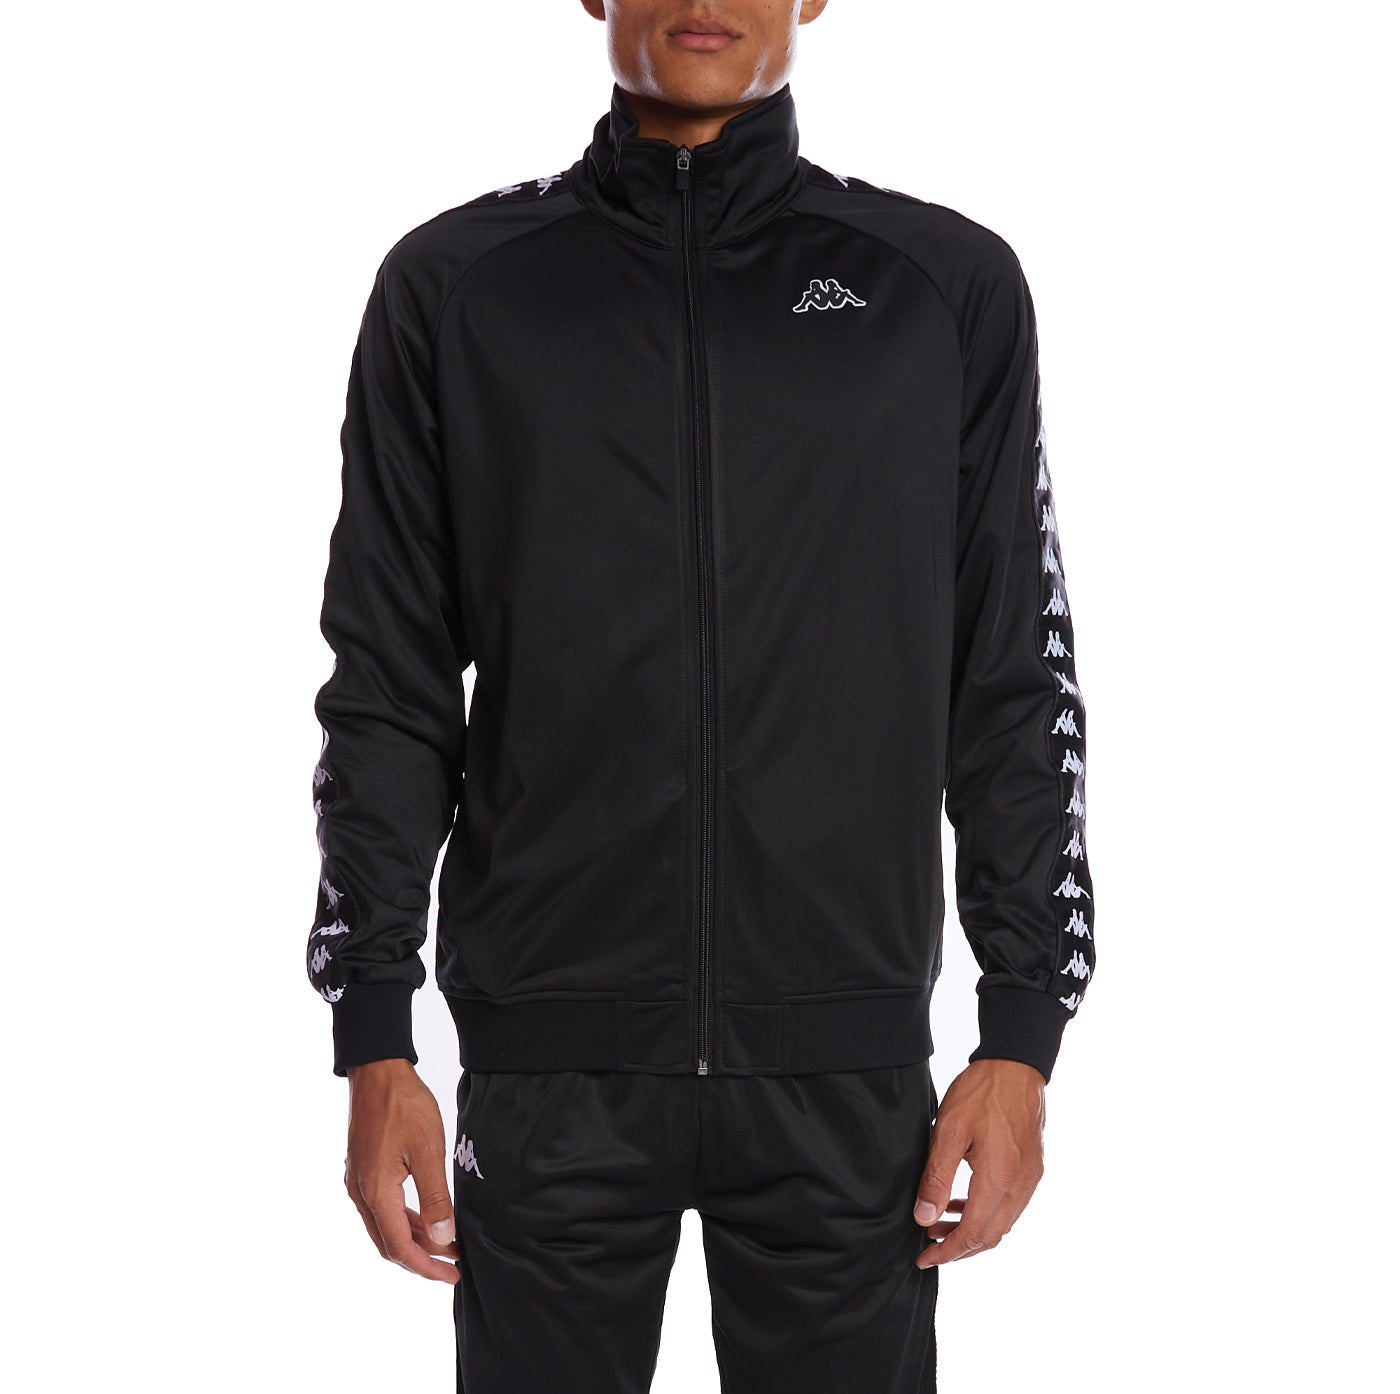 Men's Track Outfit